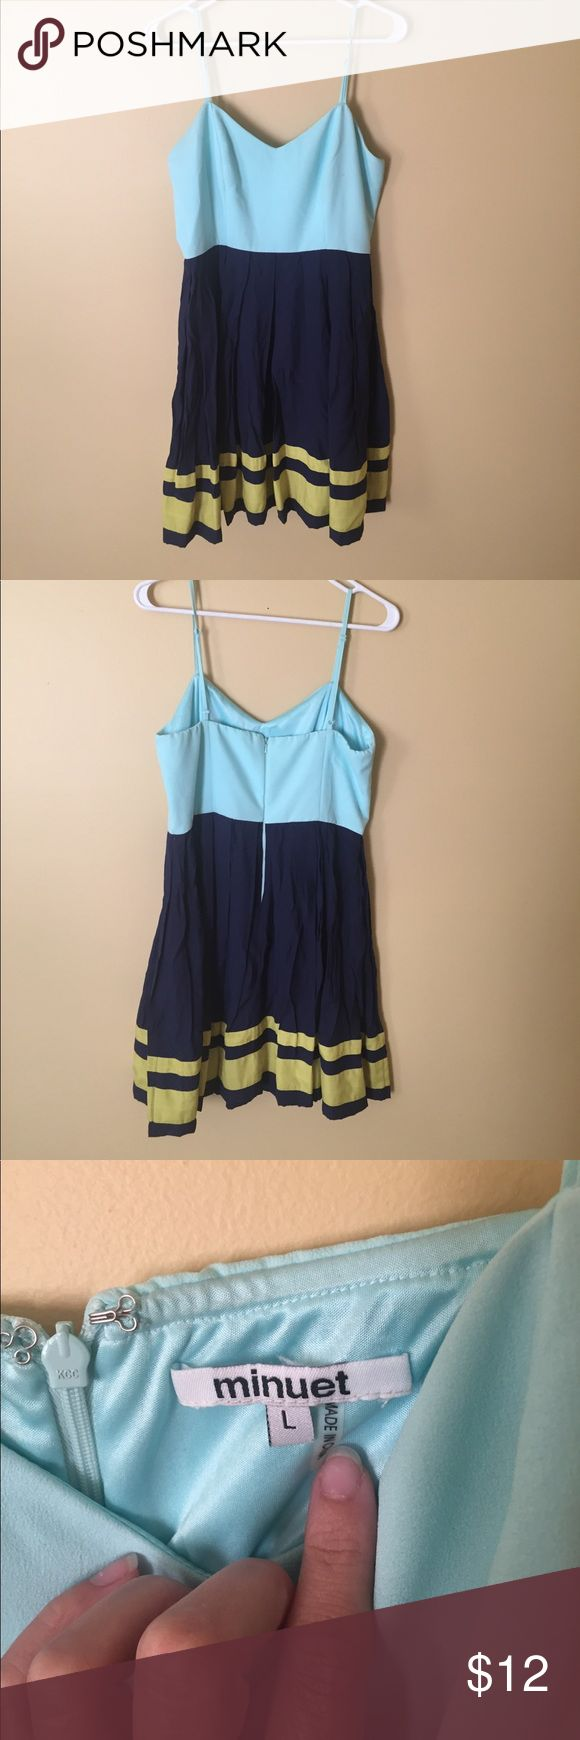 Dress by minuet, size large, color block pattern Wore this dress once to a wedding at a yacht club, excellent condition, smoke-free home, fun colors with light real on top with navy and a stripes of yellow on the bottom Minuet Petite Dresses Midi